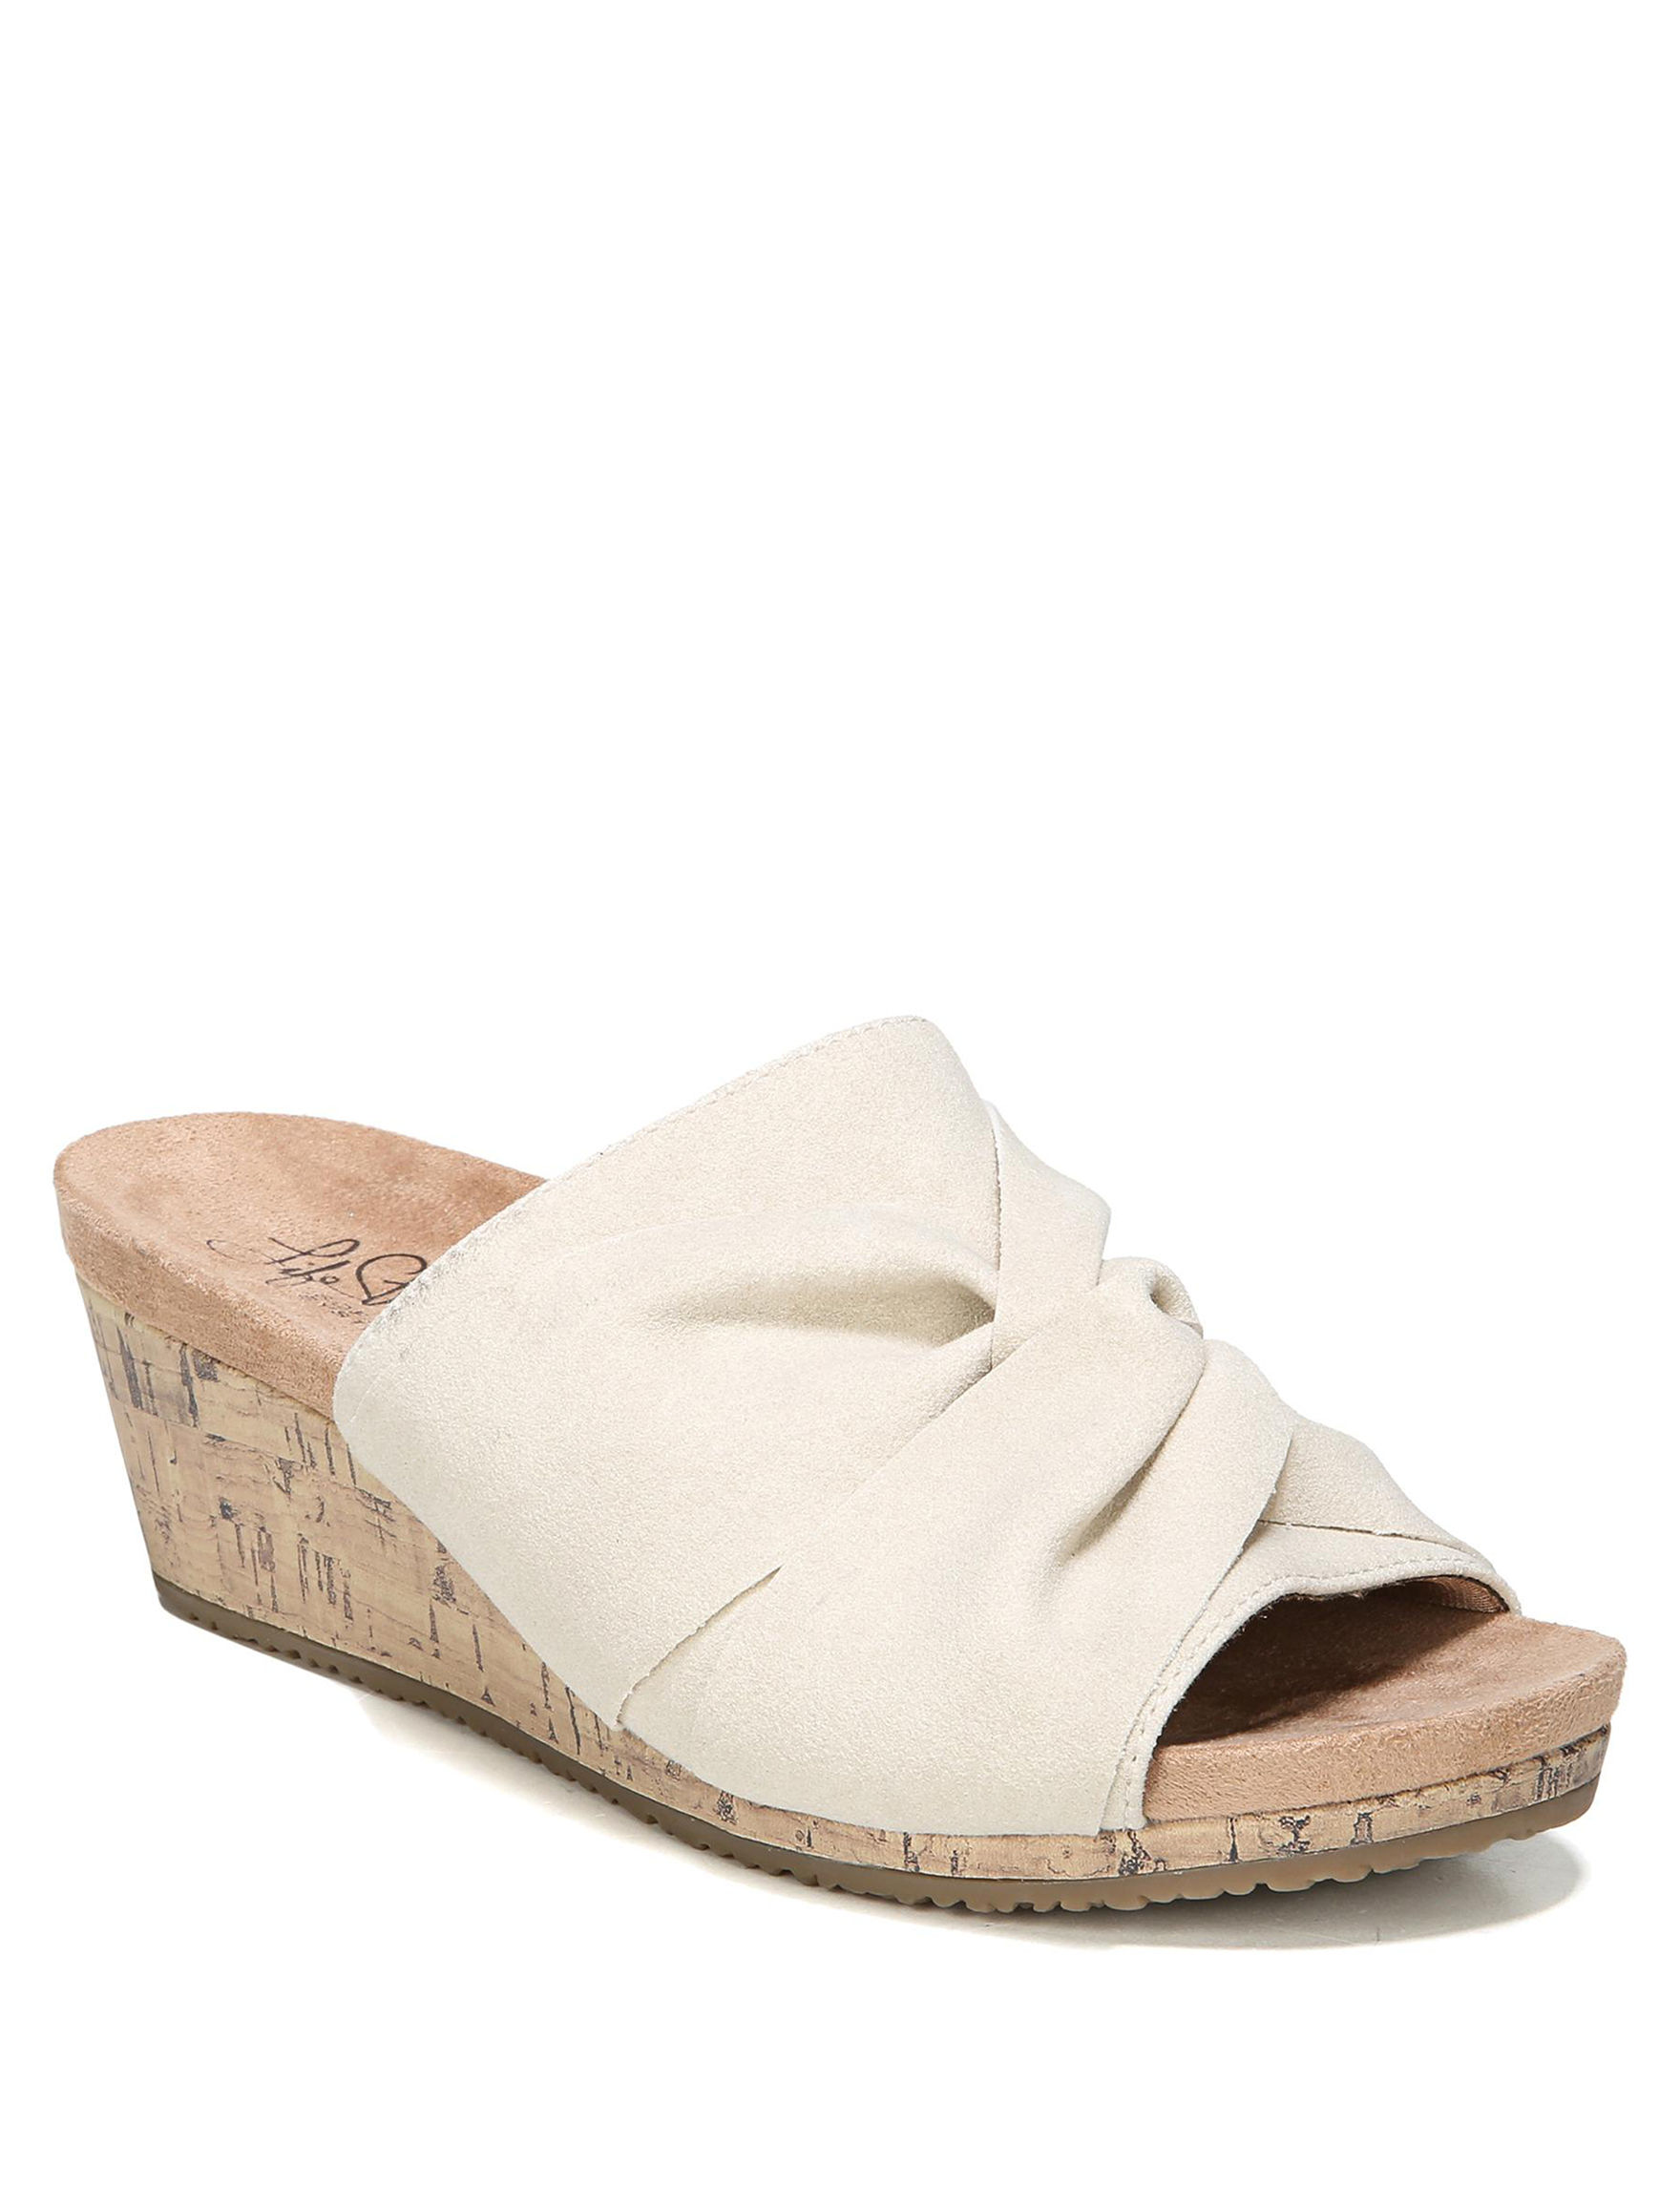 Lifestride Bone Peep Toe Wedge Sandals Comfort